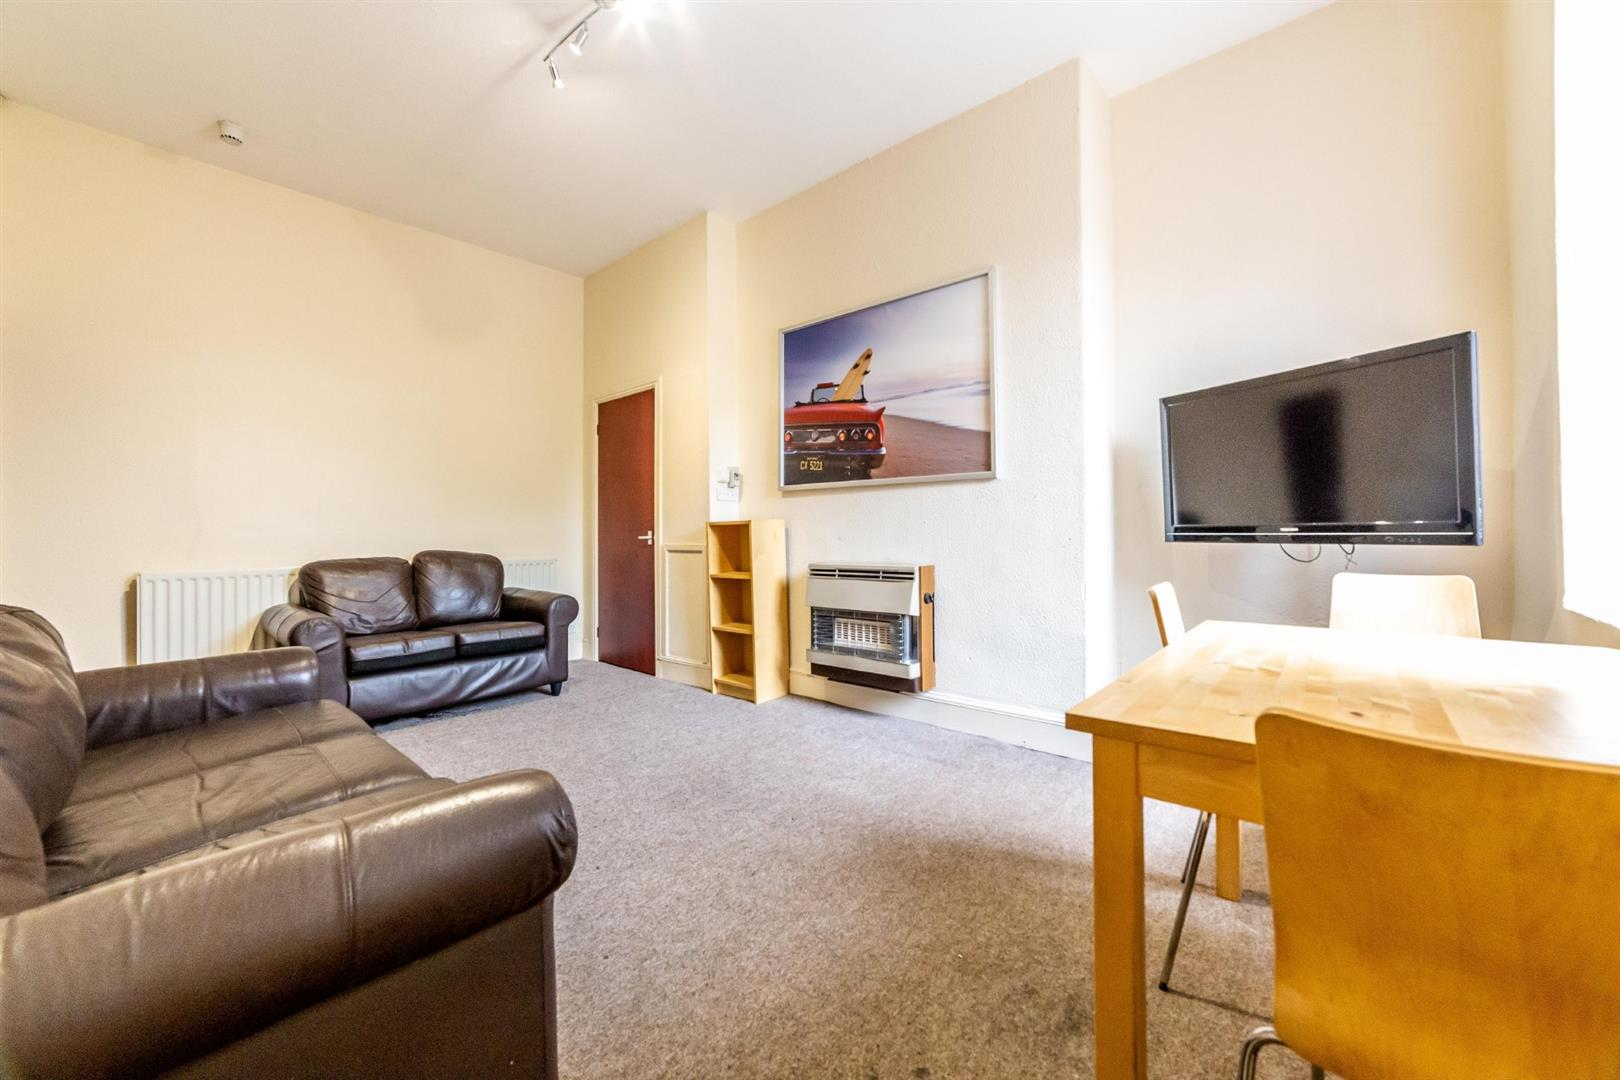 4 bed maisonette to rent in Newcastle Upon Tyne, NE6 5HL  - Property Image 1